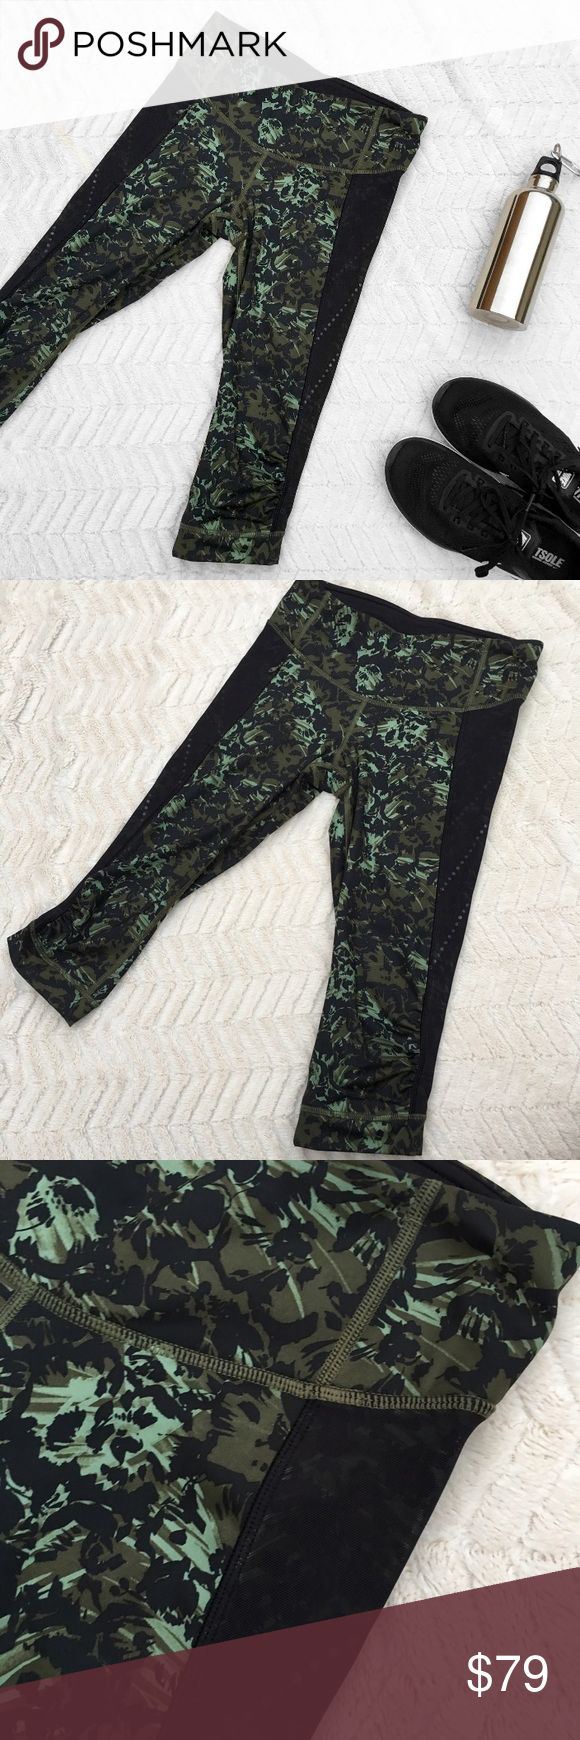 "Lululemon Athletica Stop at Nothing Camo Leggings Lululemon Athletica • Style is called ""Stop At Nothing"" • Size 4 • Measurements: Waist: 25"". Leg inseam: 18"" long. • Green camouflage design with black mesh paneling / color blocking on the sides • 3/4 length capris / cut offs • Zipper pocket on the right side • In absolutely perfect condition except that the inside tag was cut off because it was itchy • Lululemon logo at the lower back portion • Cinch waist • Slight gathering / cinching…"